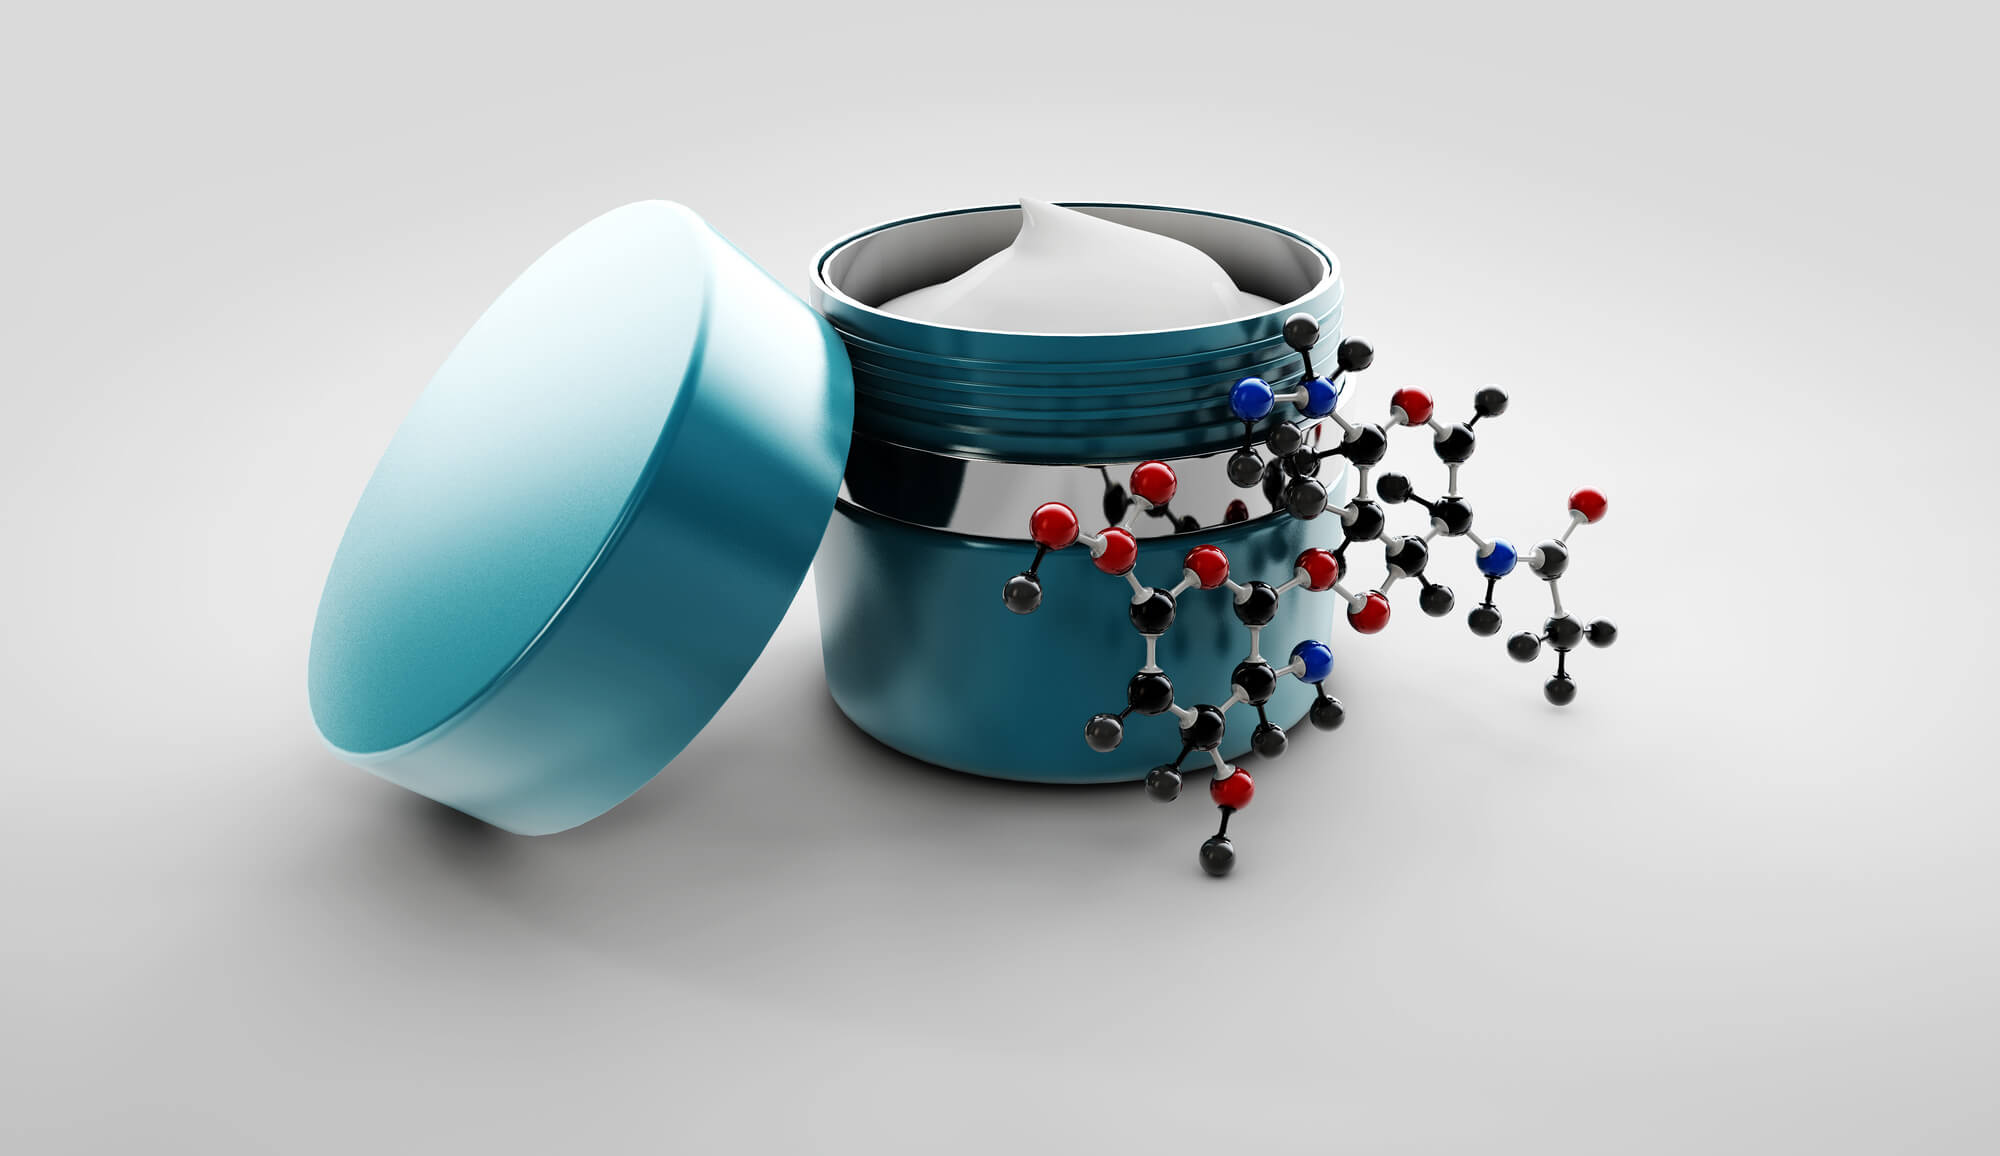 Product jar with molecule model